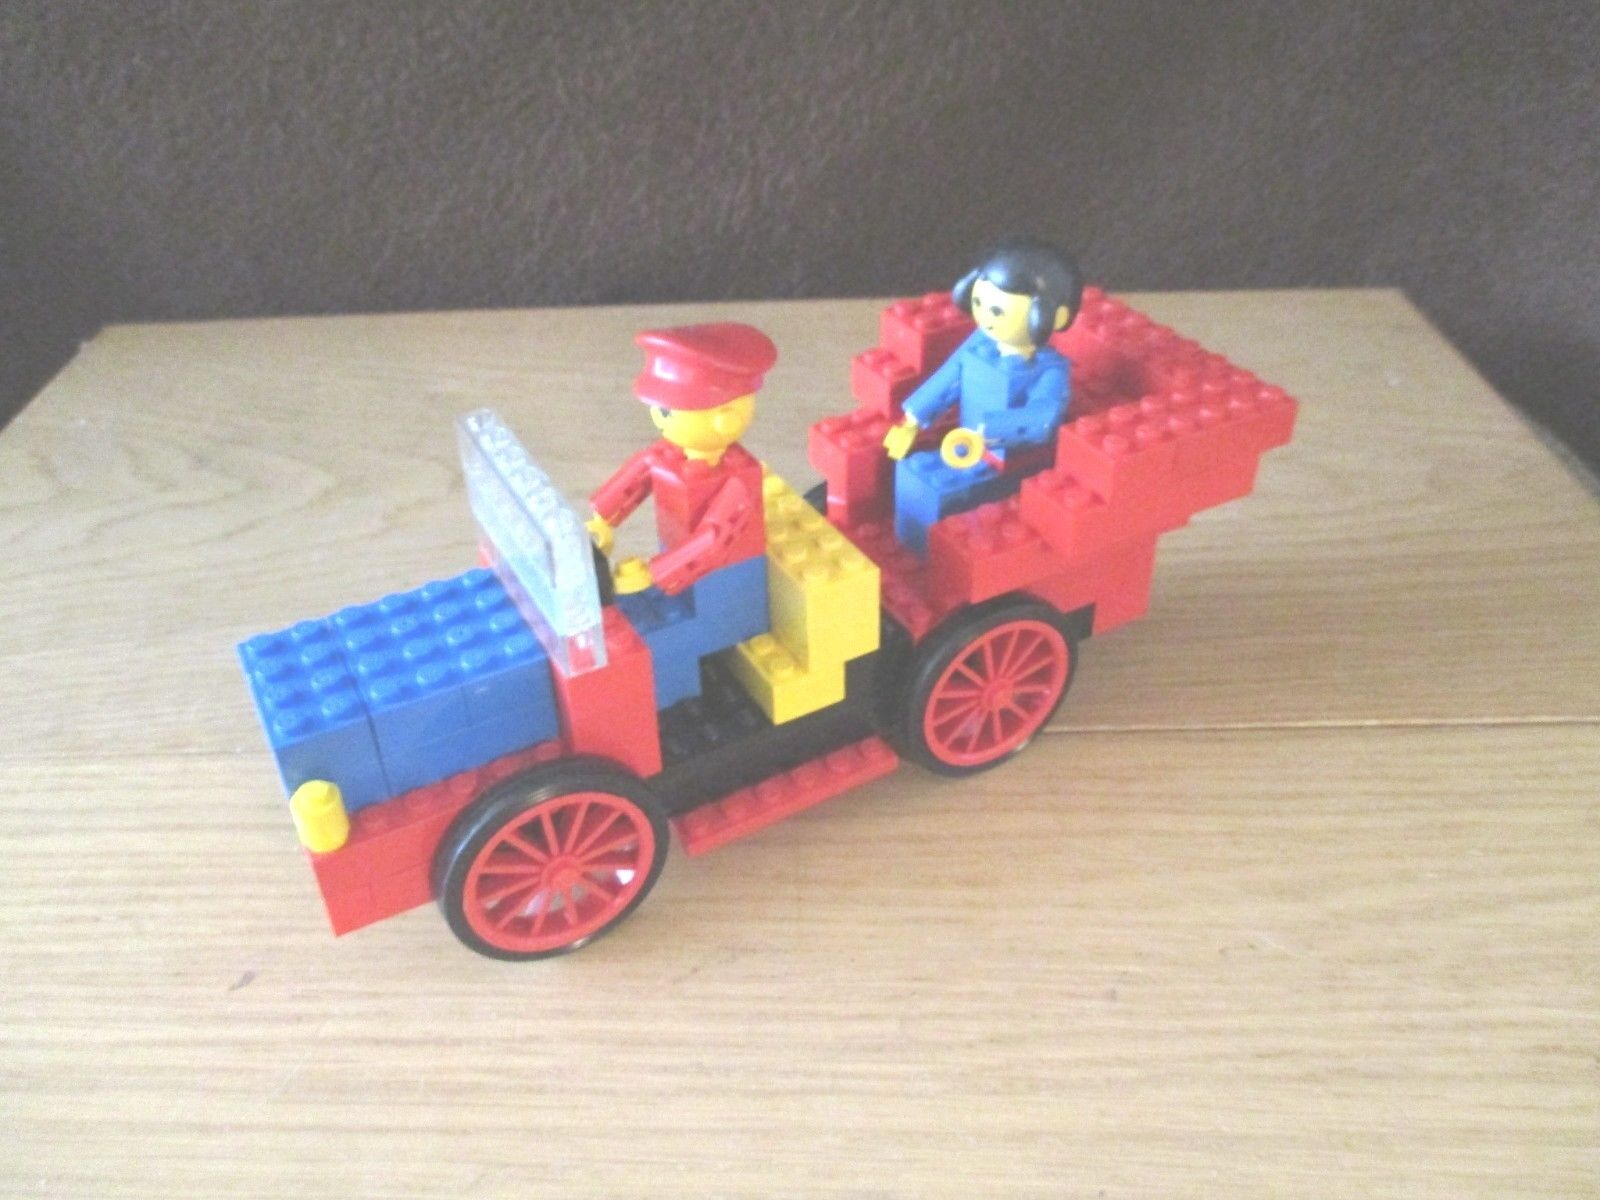 Lego-Homemaker-Antique Car nº 196 de 1975